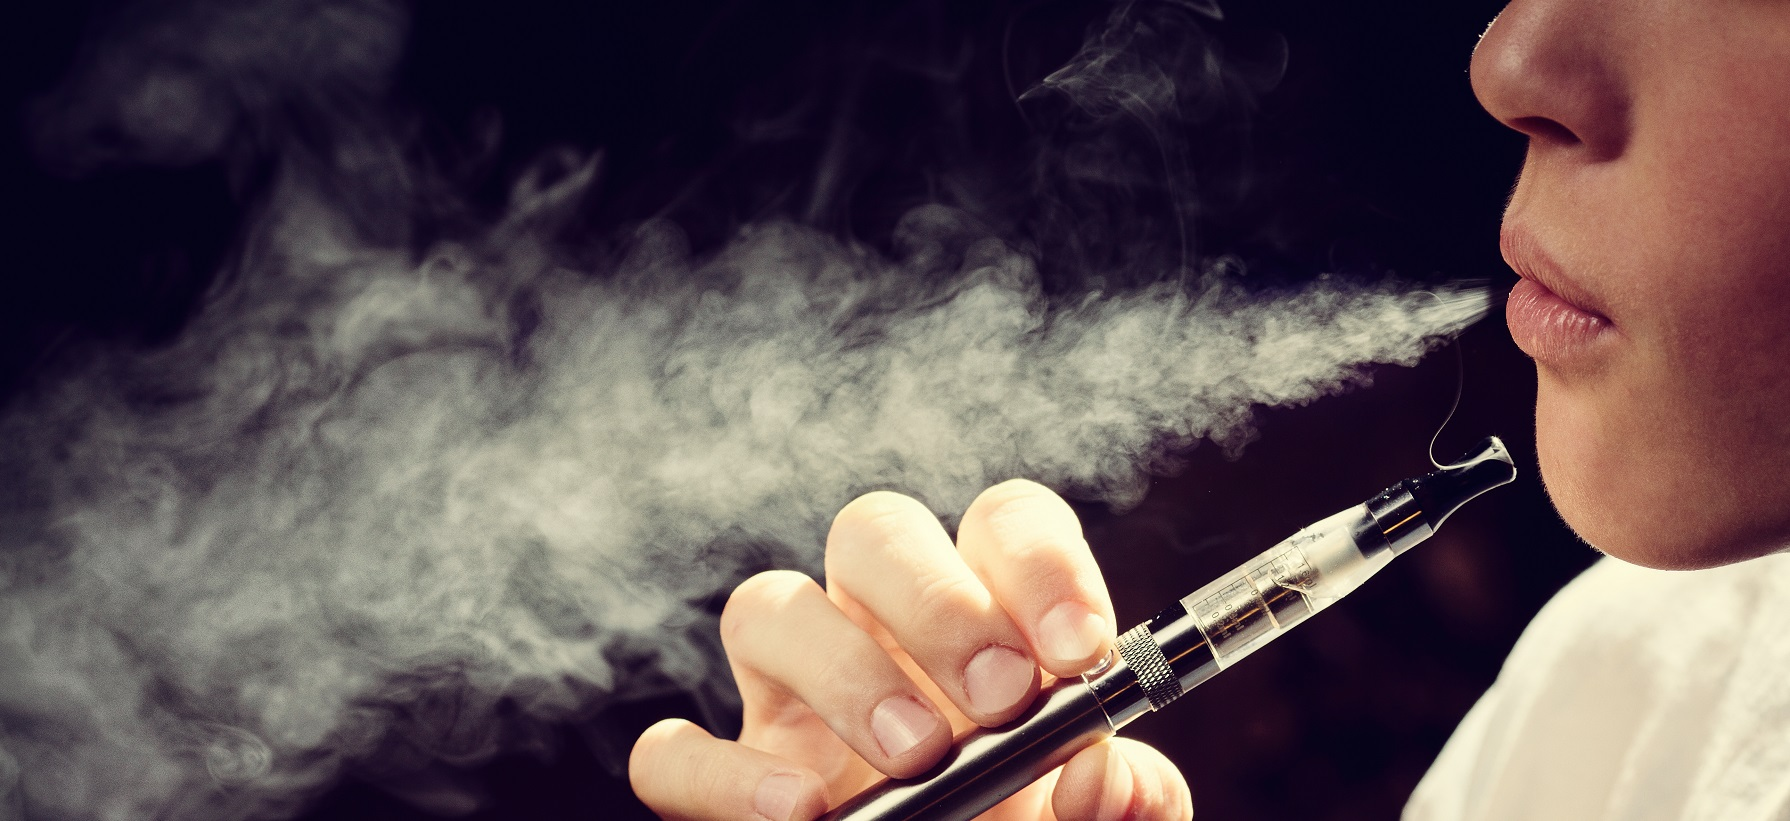 Image Result For Electronic Cigarettes Without Nicotine And Tobaccoa